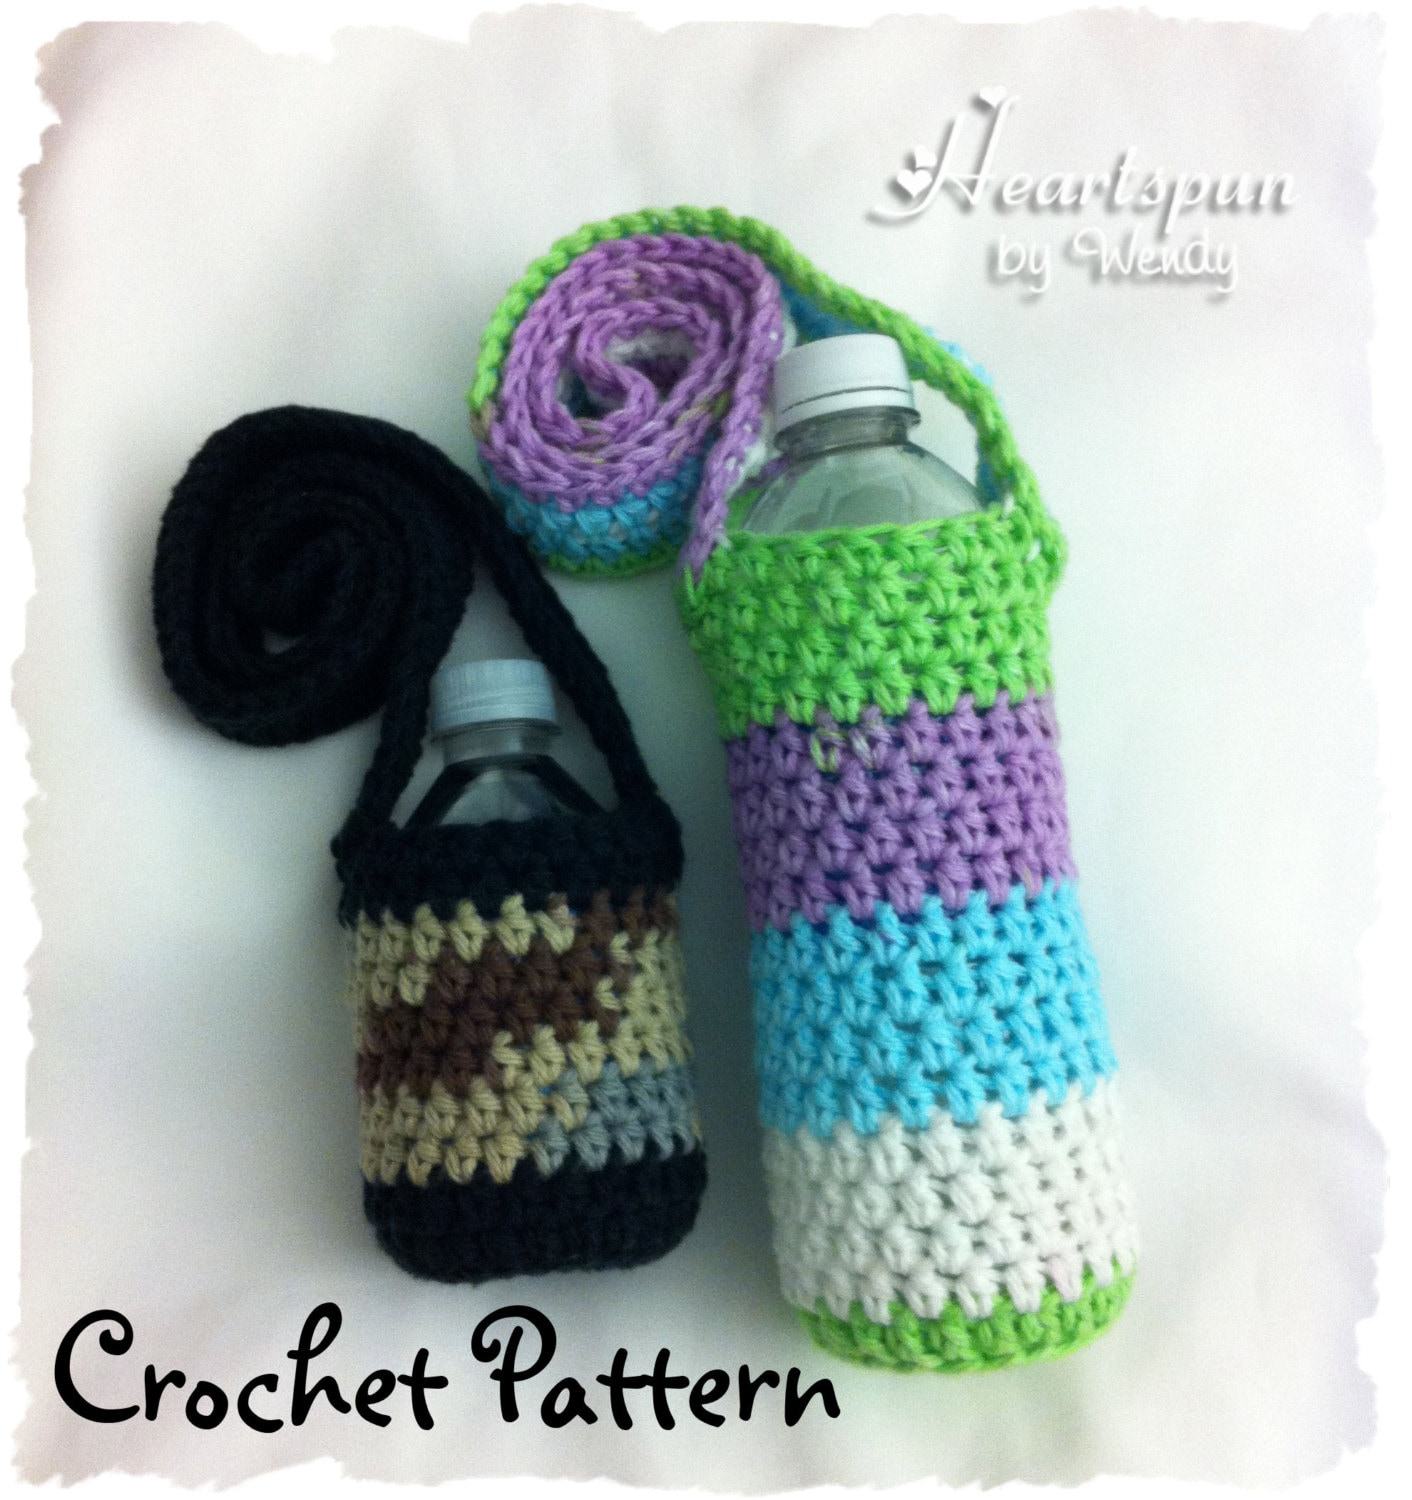 CROCHET PATTERN to make a Changing Colors Water Bottle Holder